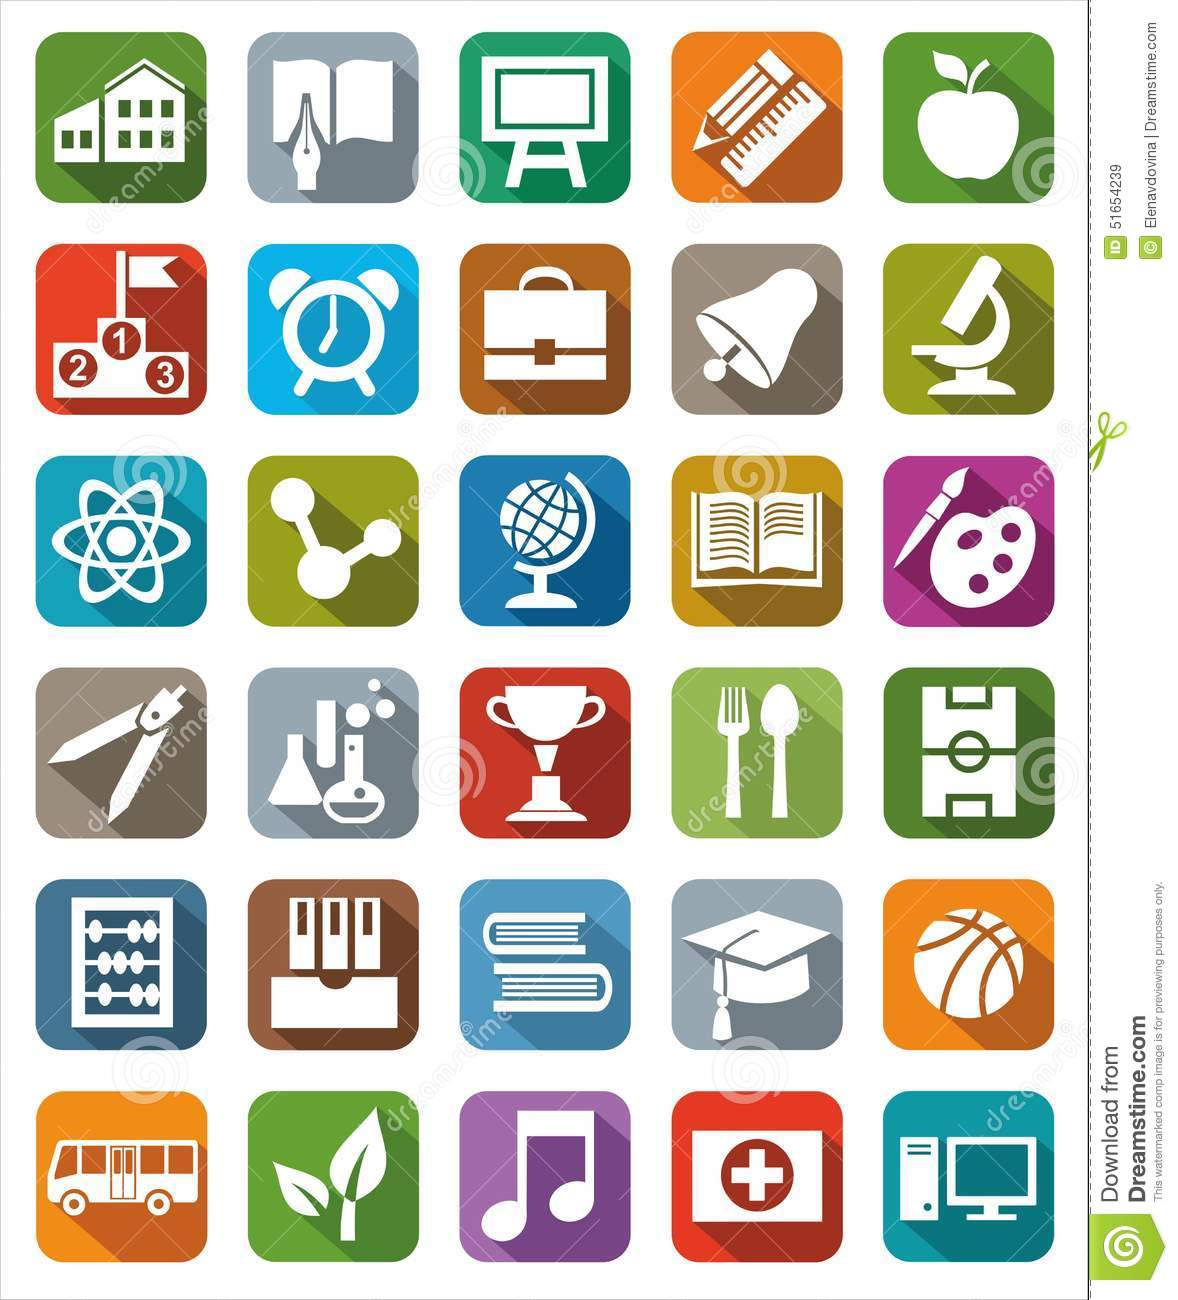 Icons colored education.